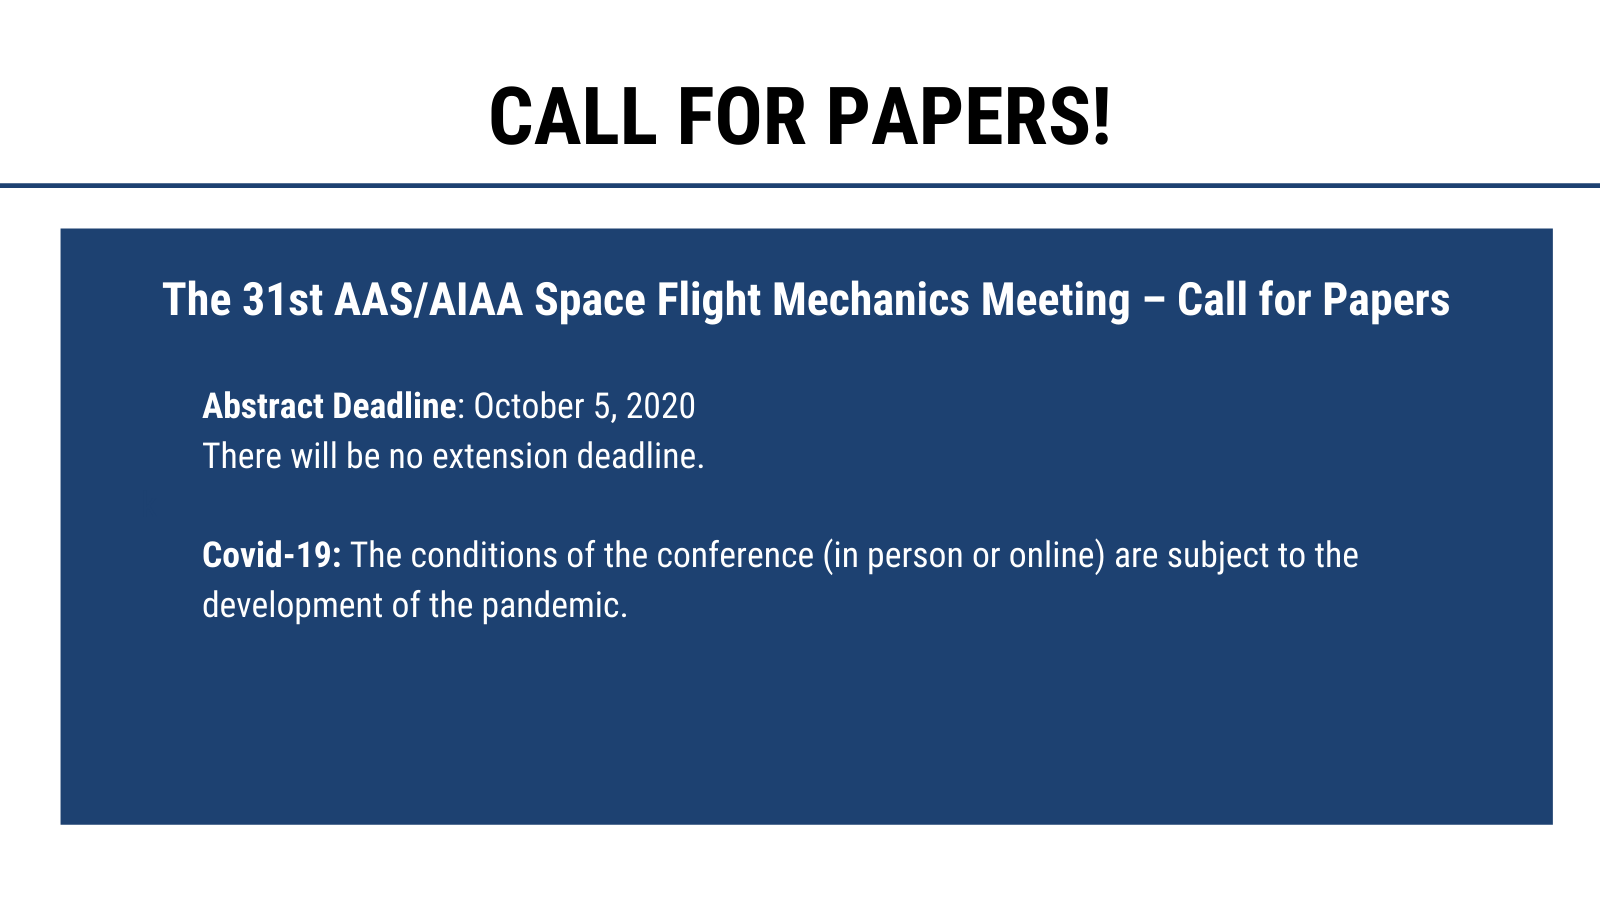 The 31st AAS/AIAA Space Flight Mechanics Meeting – Call for Papers